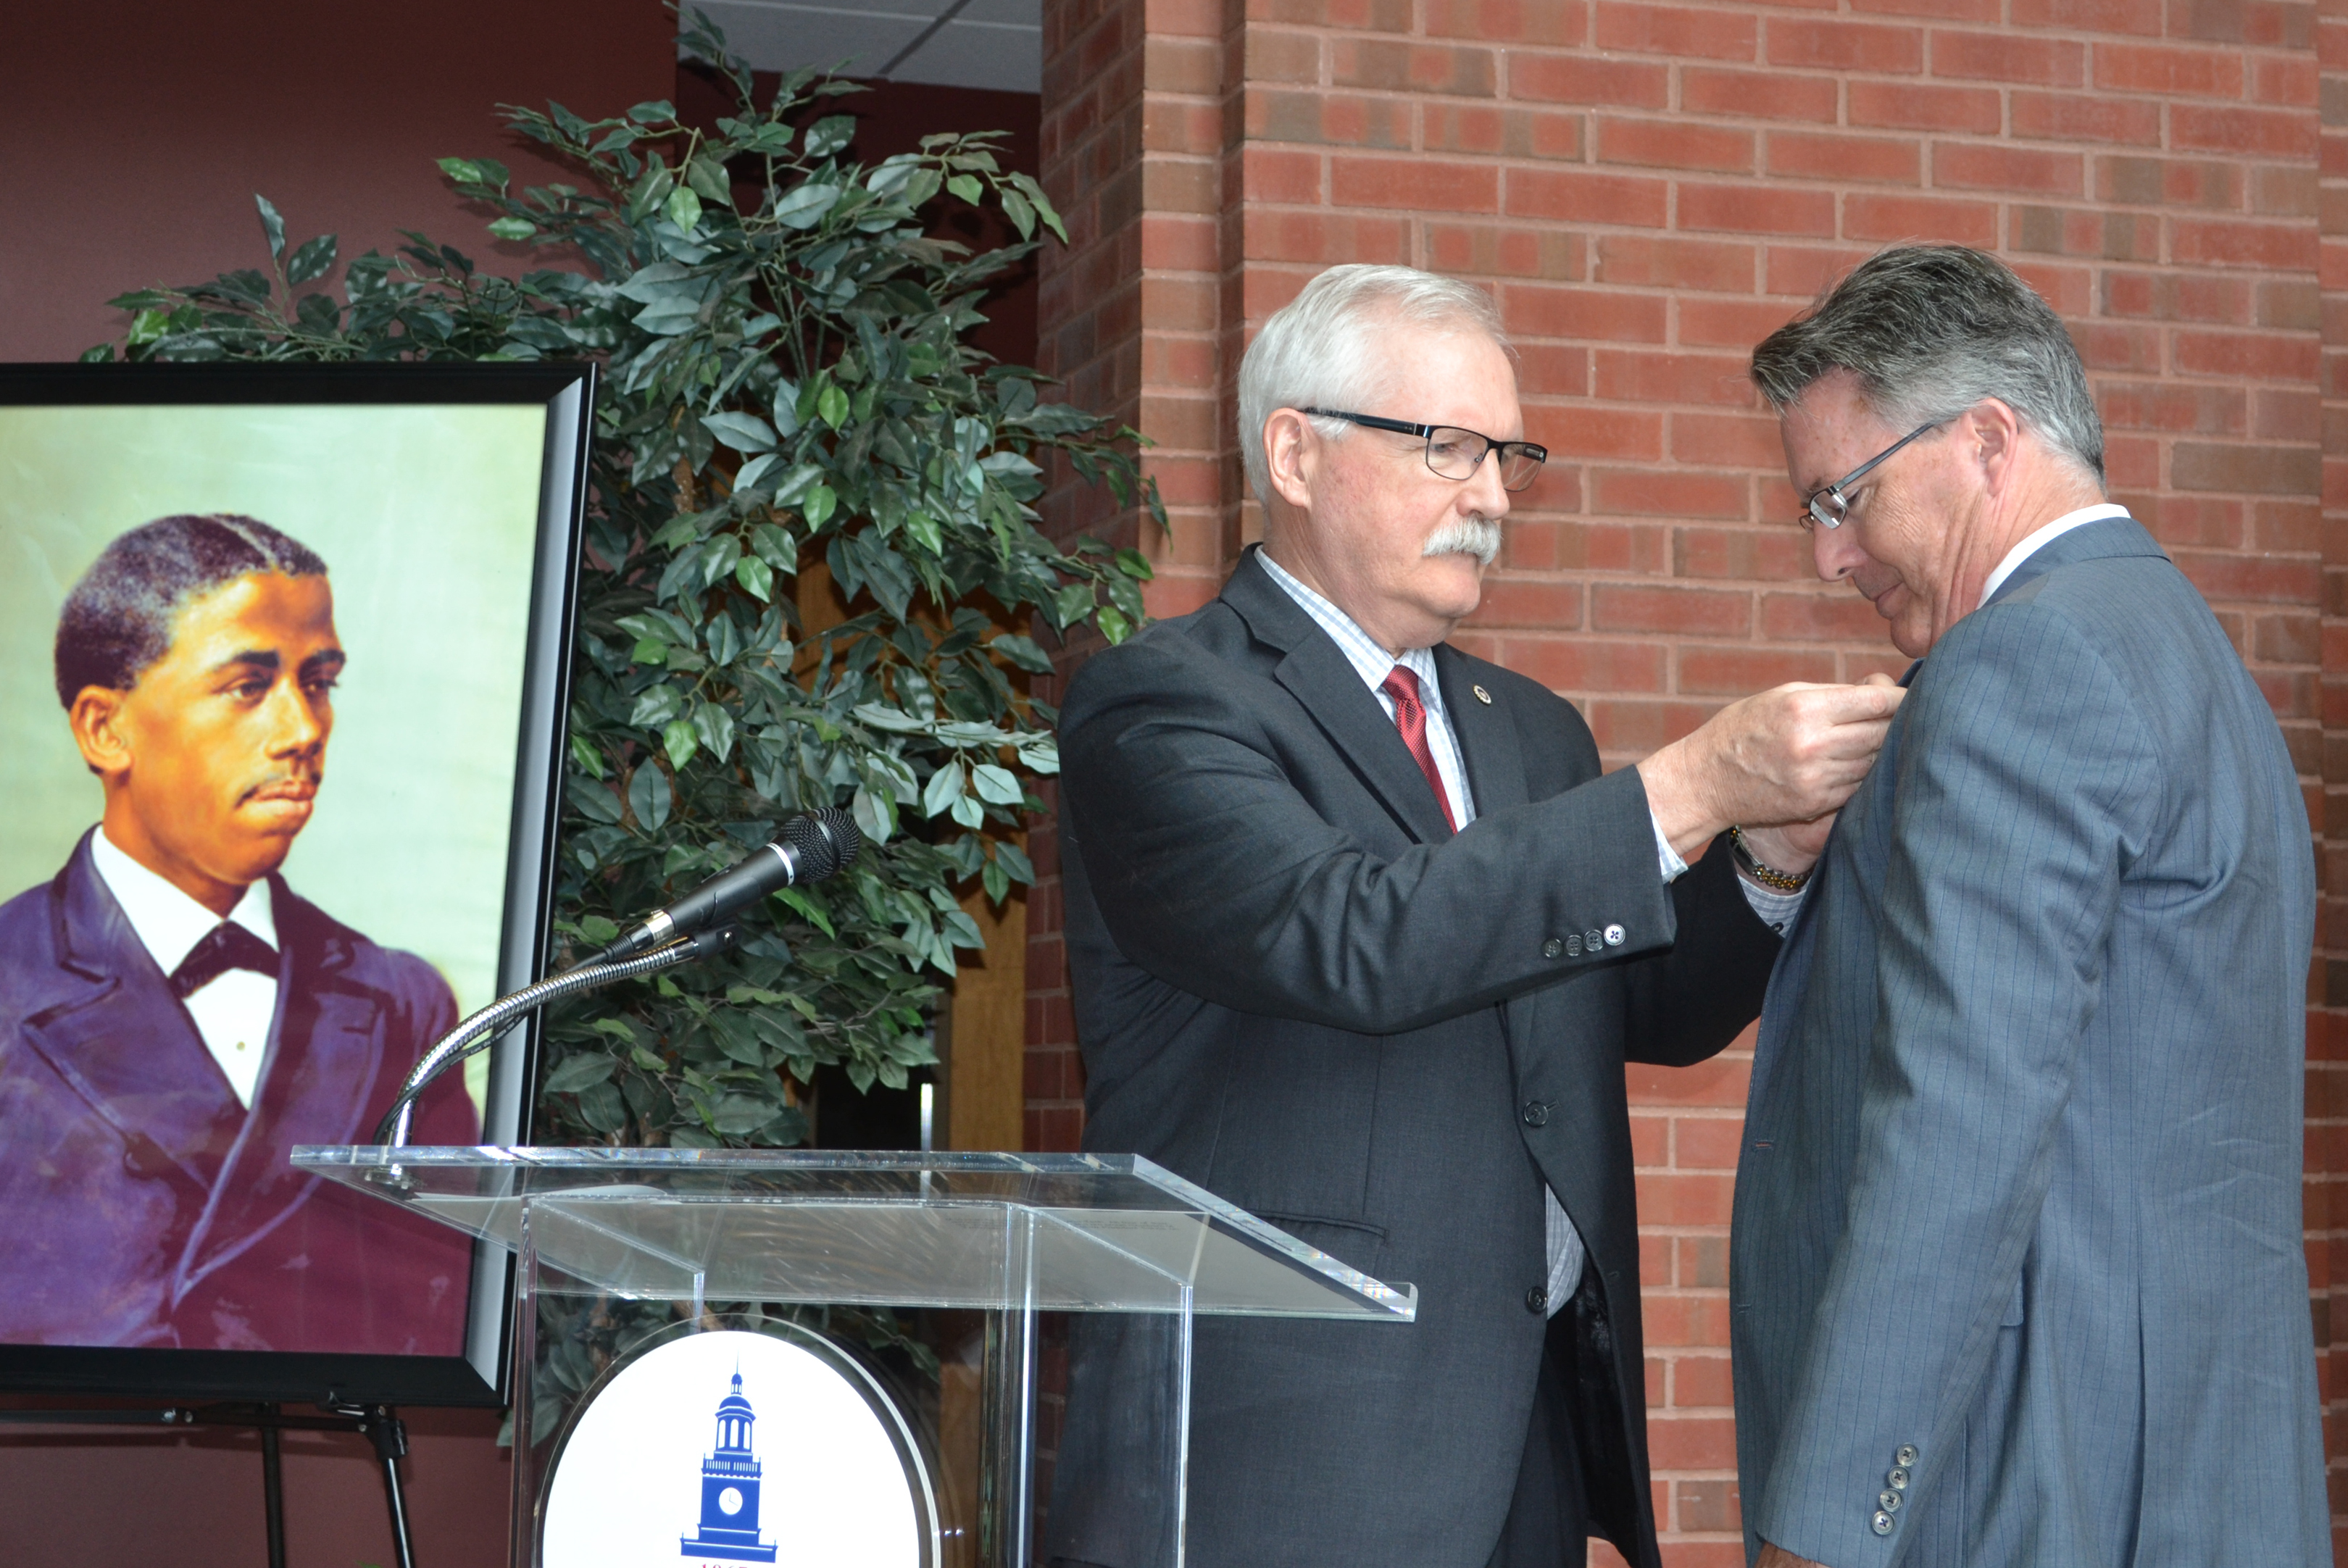 Howard University Associate Provost Gary L. Harris attaches a pin to President Tim Sands' lapel at the Bouchet Forum, where Sands received the Bouchet Legacy award